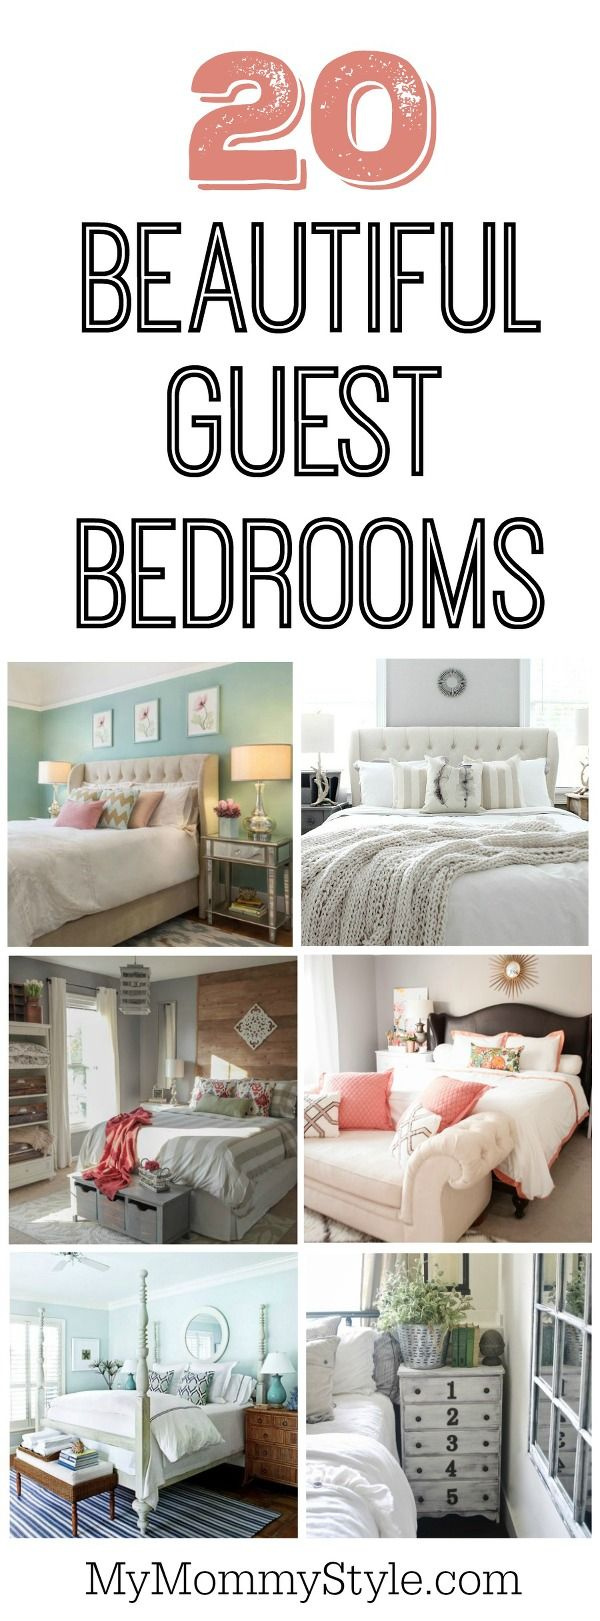 20 Beautiful Guest Bedroom Ideas More